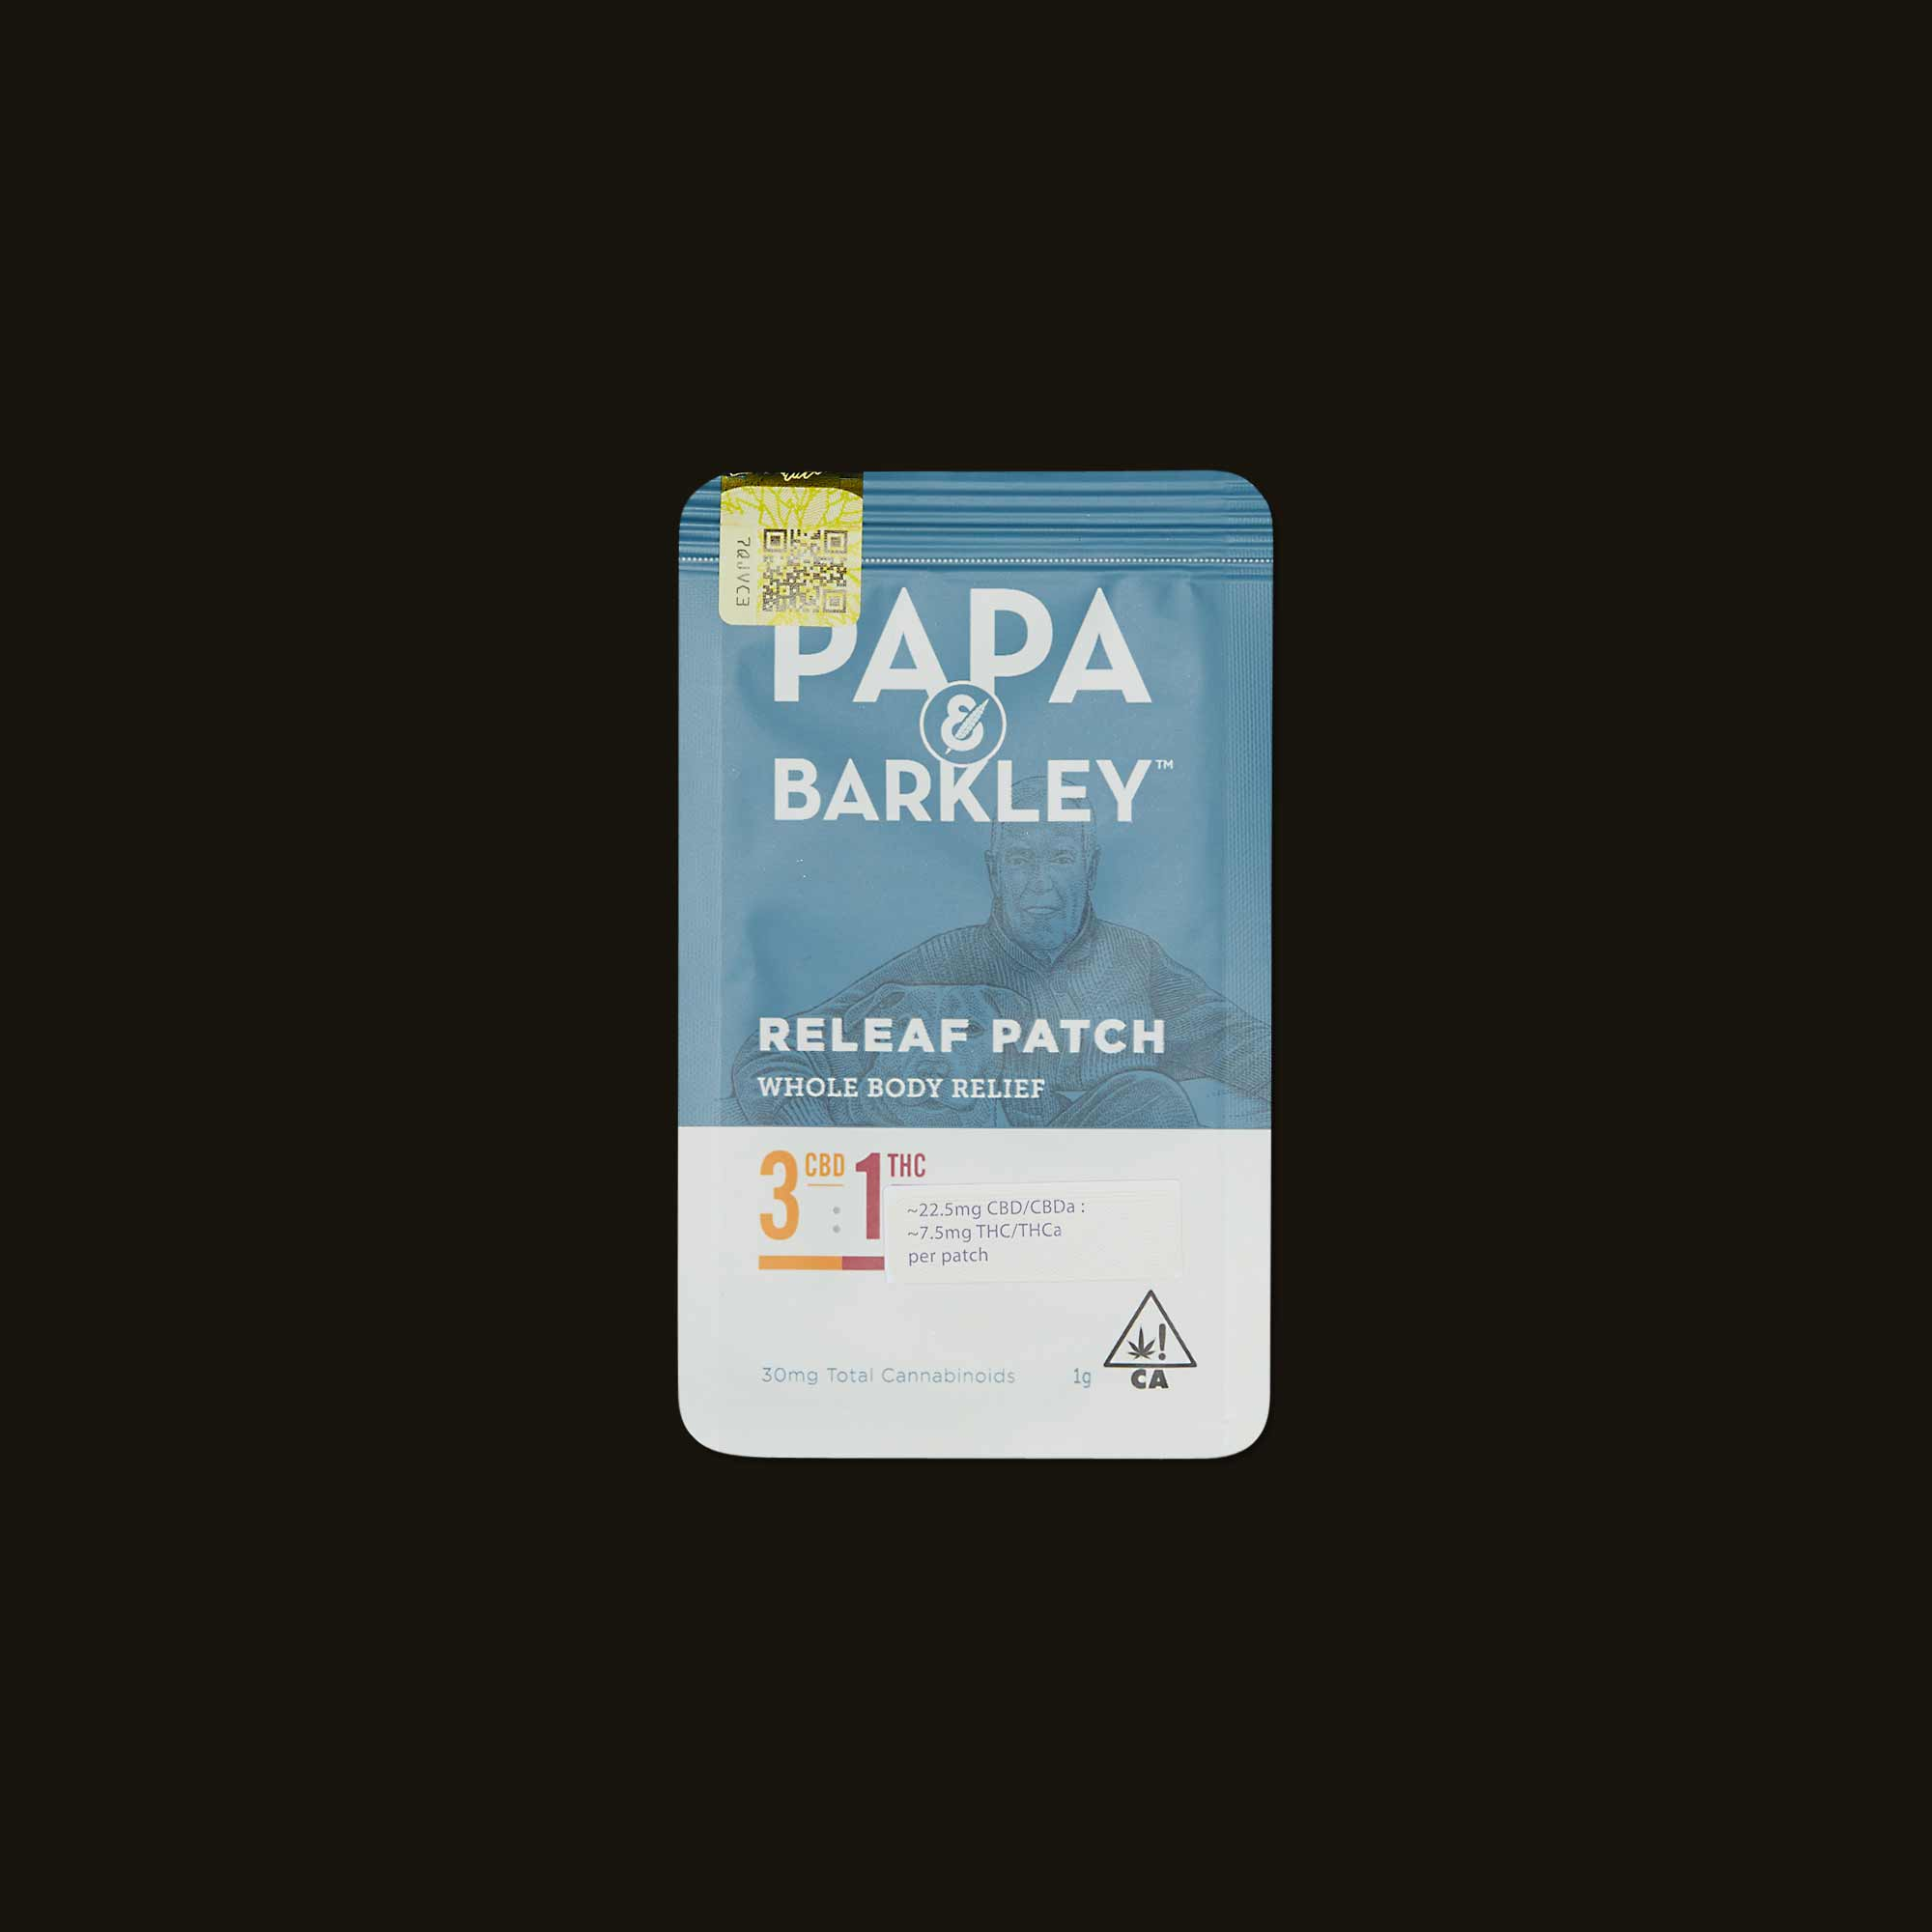 Package of Papa & Barkley CBD Relief Patch